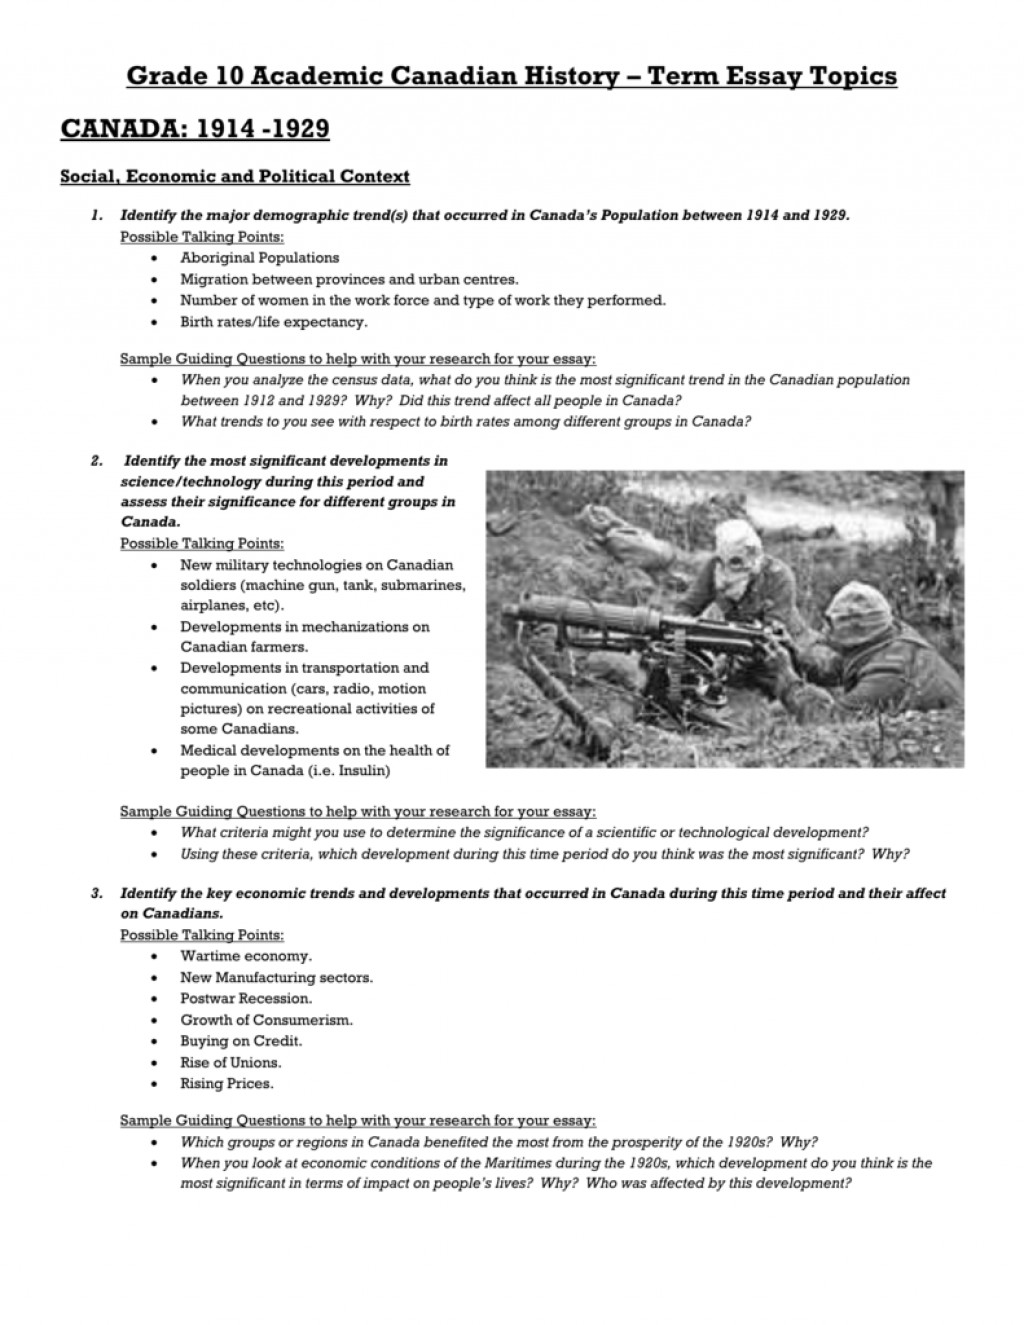 018 History Research Paper Topics India 007102717 1 Military Related Argumentative20ssay Topics20thics Stunning Large